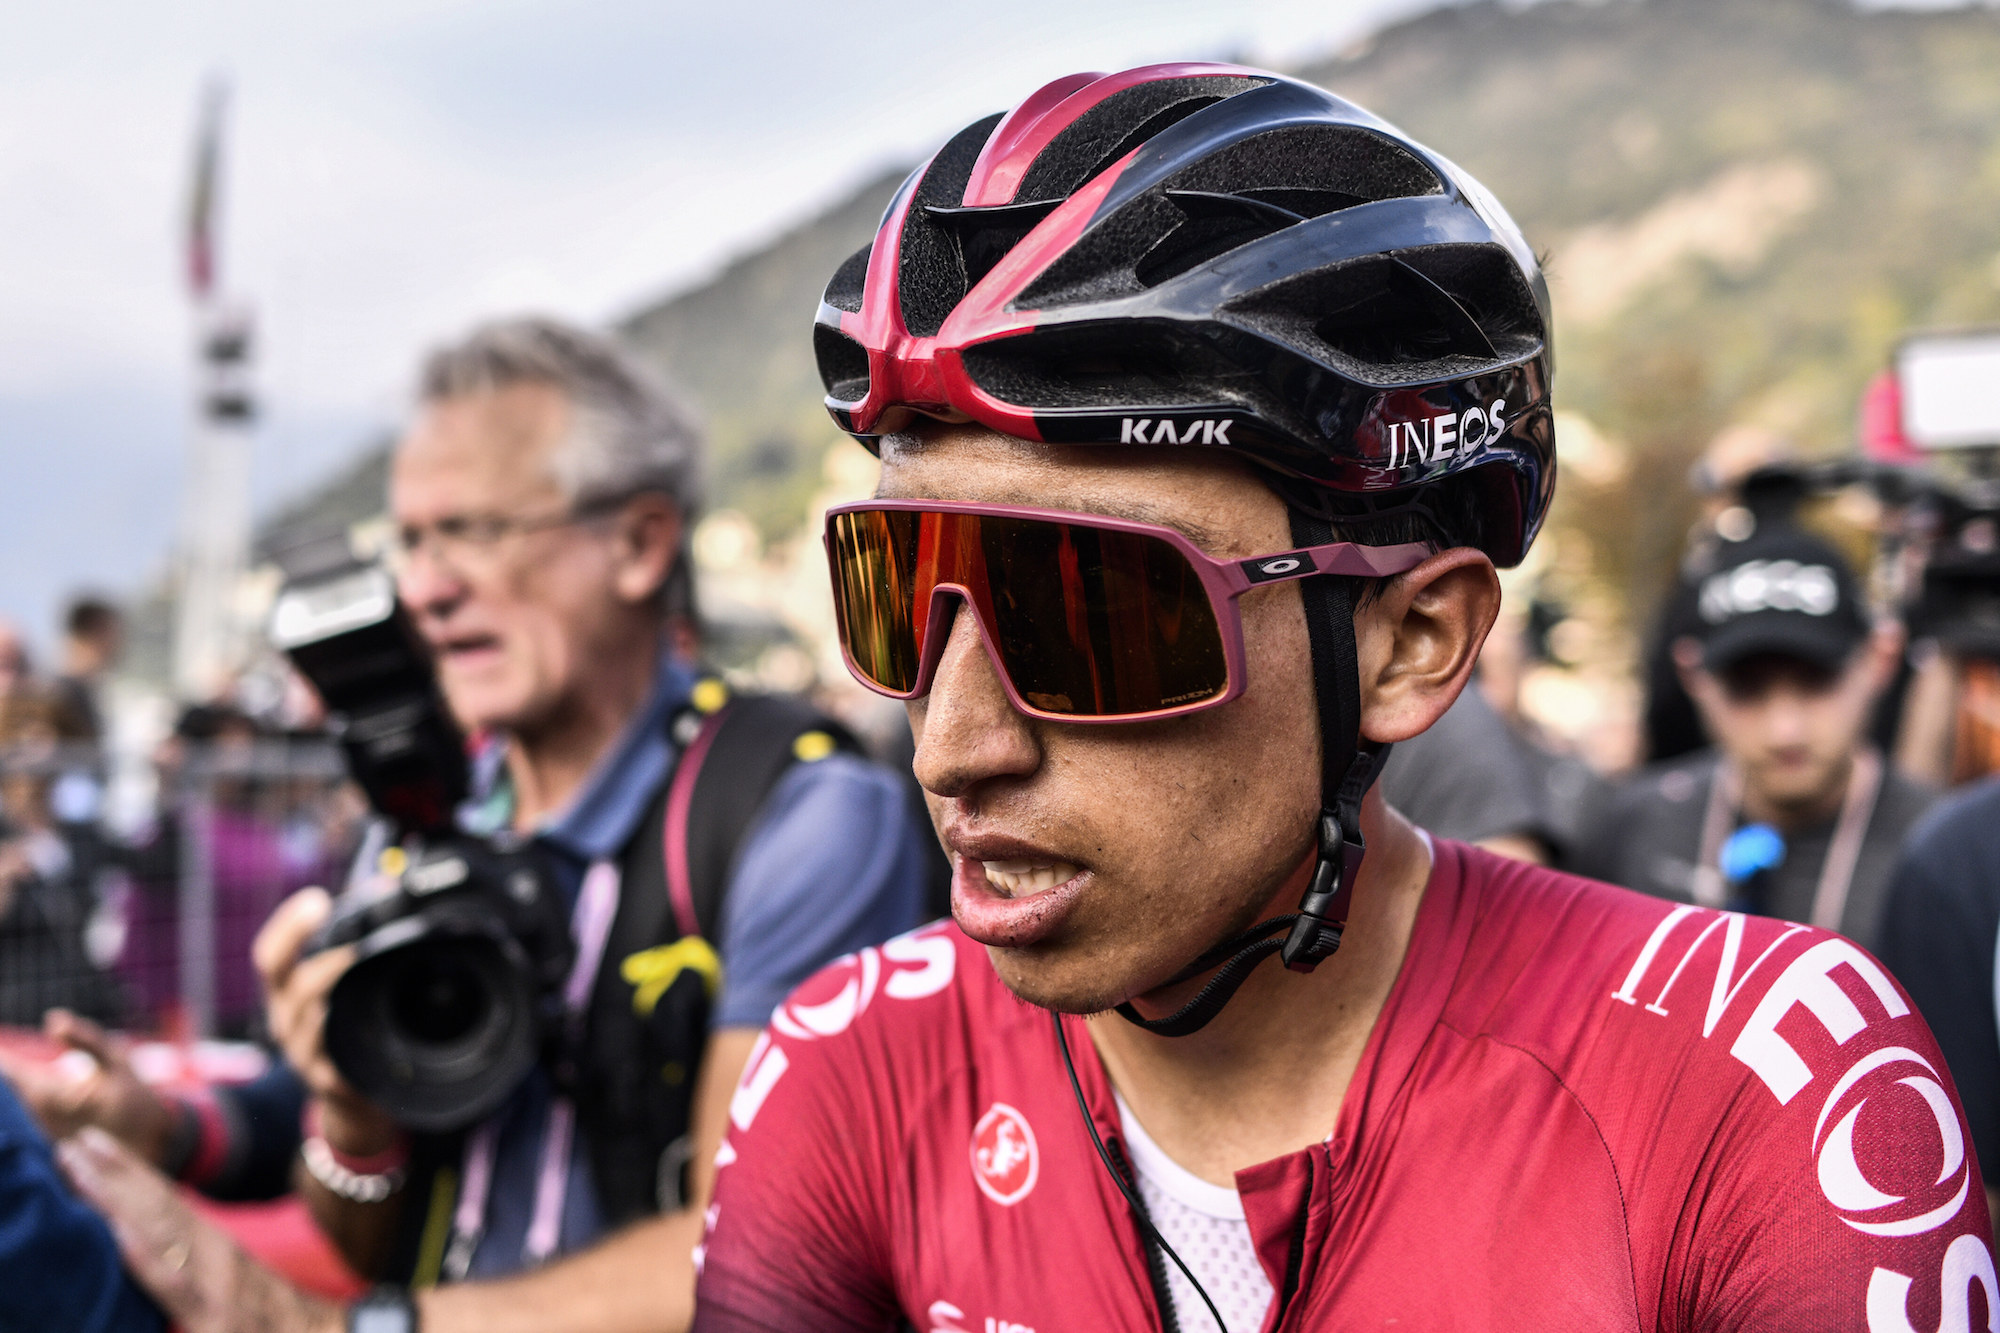 'When I said in 2016 Egan Bernal would one day win the Tour everyone looked at me like a madman' says former manager - Cycling Weekly